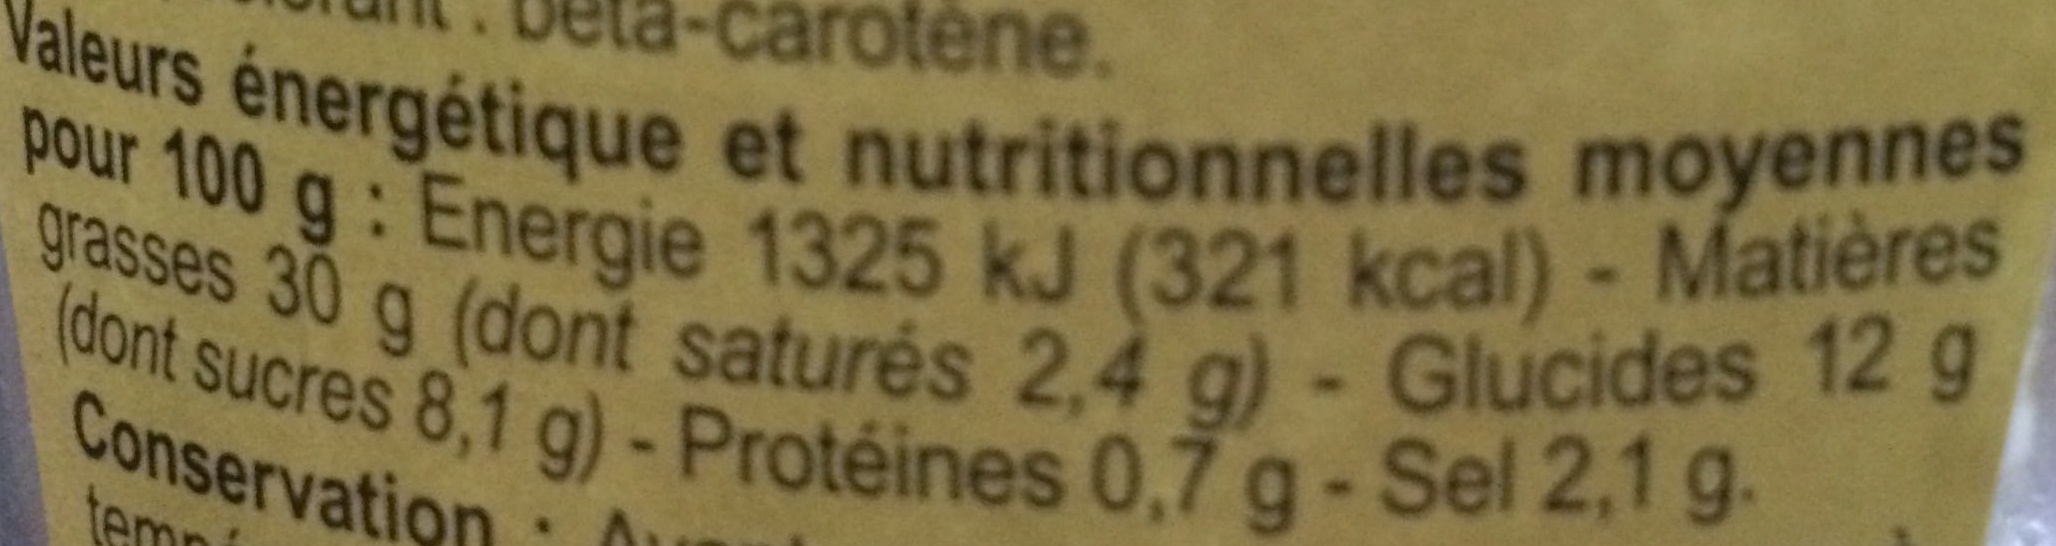 Sauce pomme frite - Nutrition facts